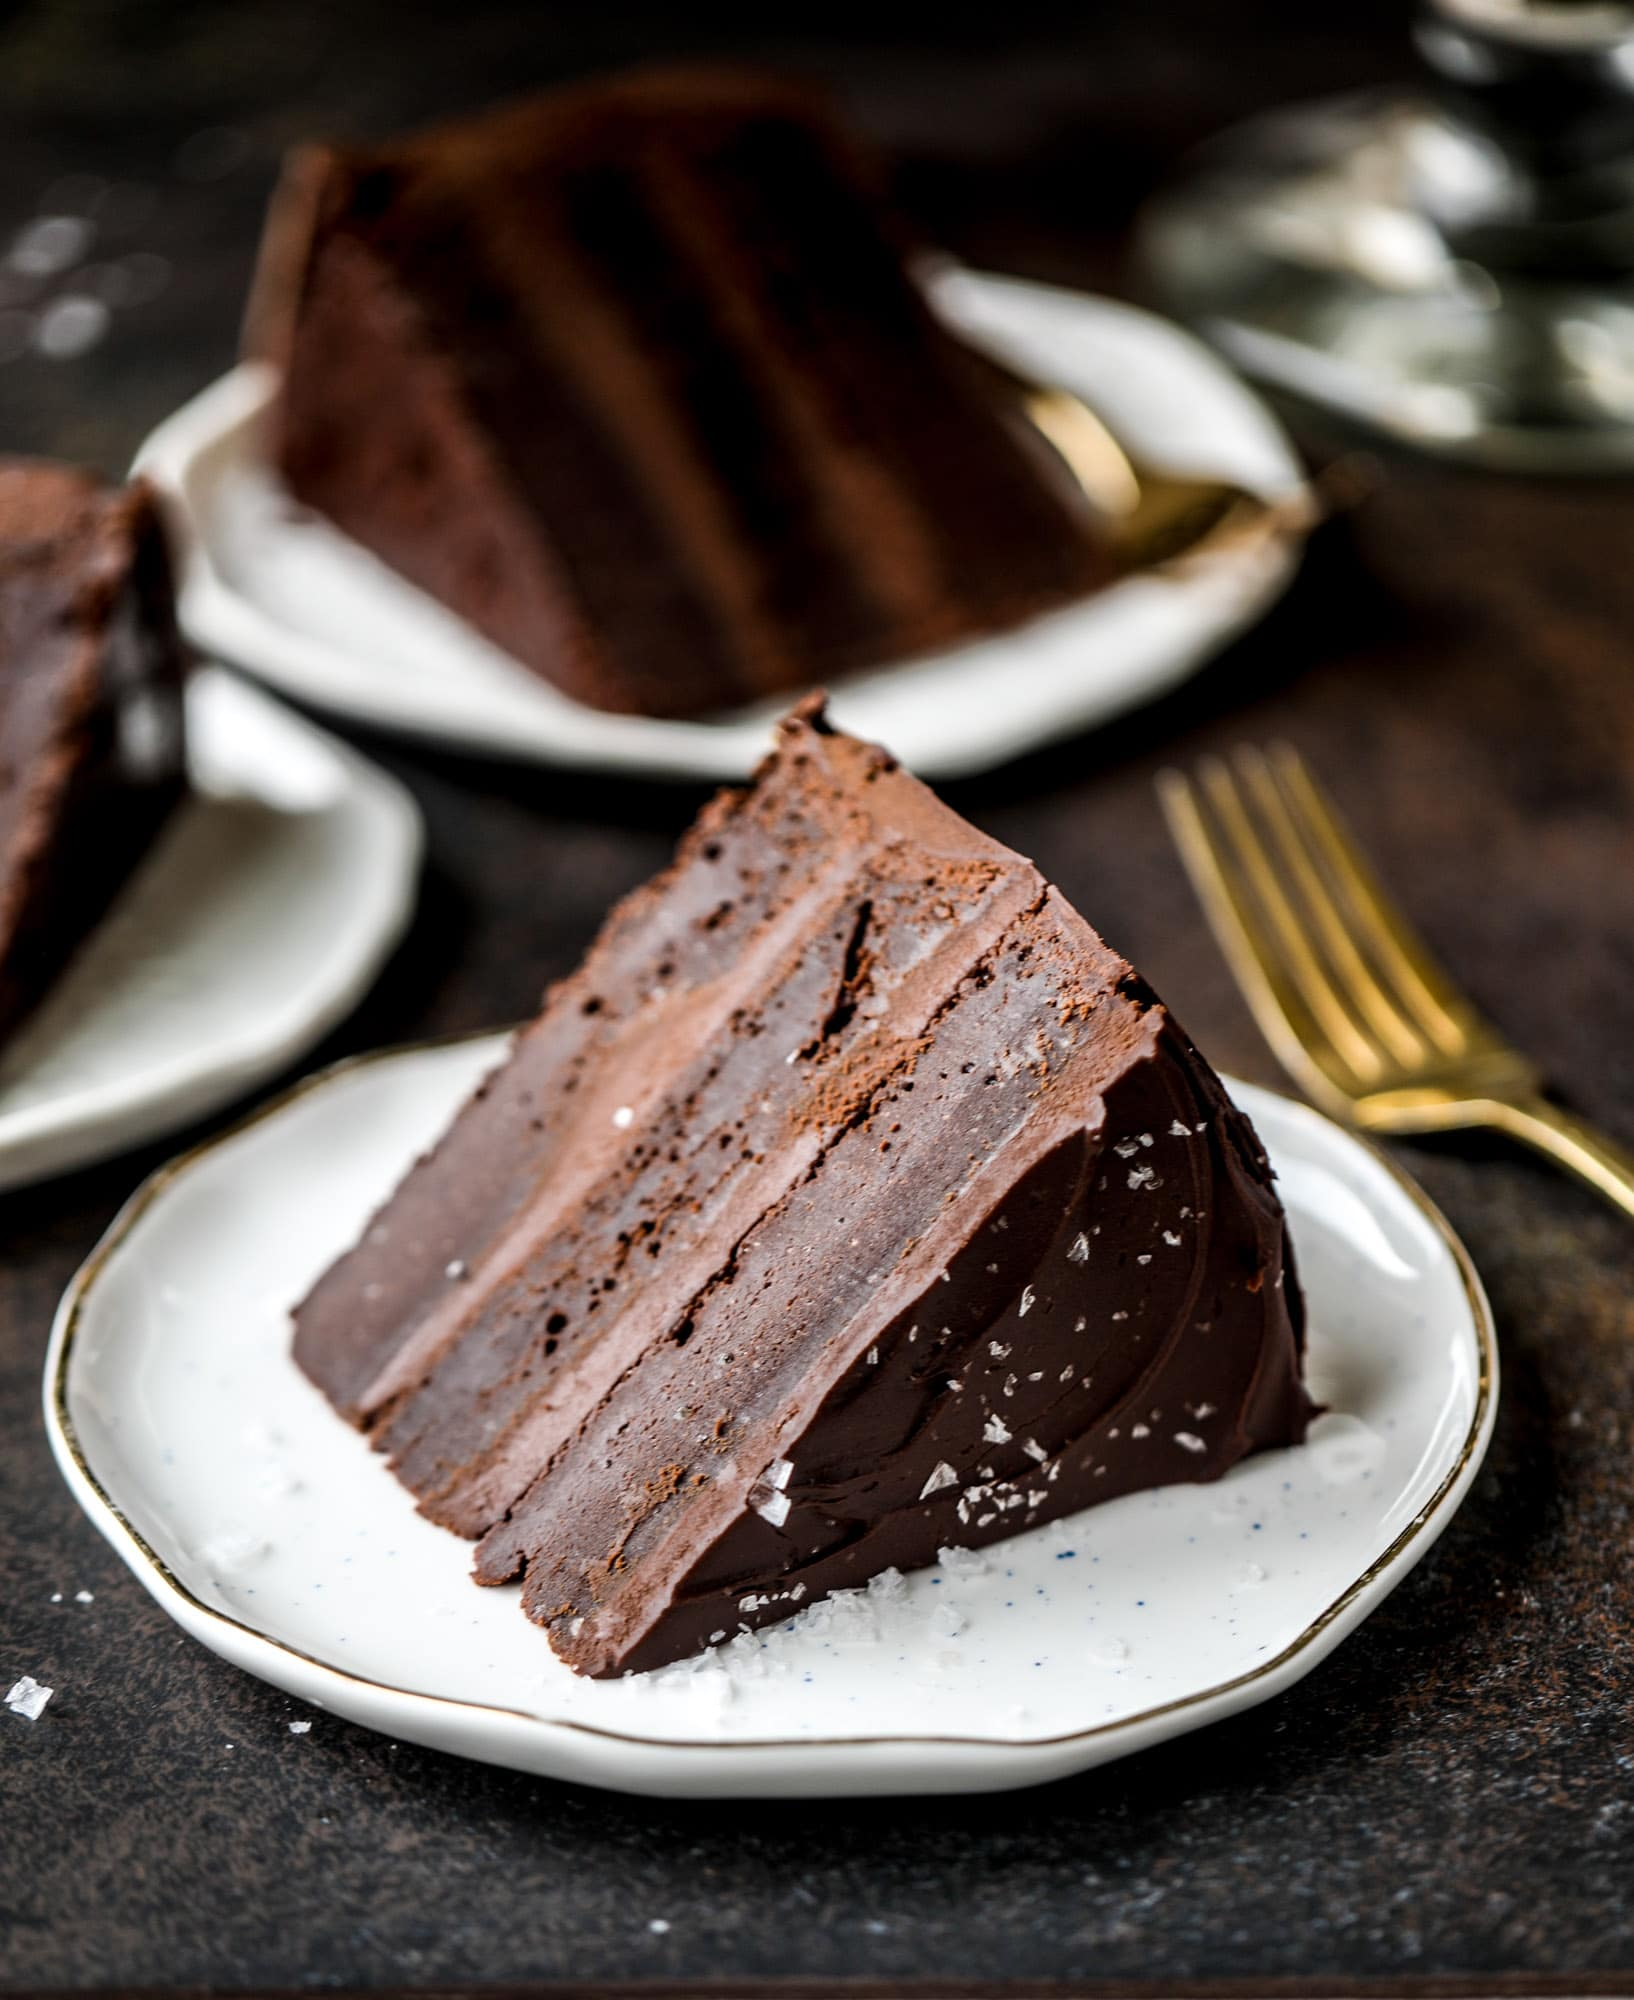 This salted dark chocolate stout cake is absolutely divine! It's ridiculously rich and perfect for a crowd or a party. Pumpkin stout batter is baked into fluffy laters and covered in a super fudgy chocolate ganache. Perfect for chocolate lovers! I howsweeteats.com #dark #chocolate #stout #cake #salted